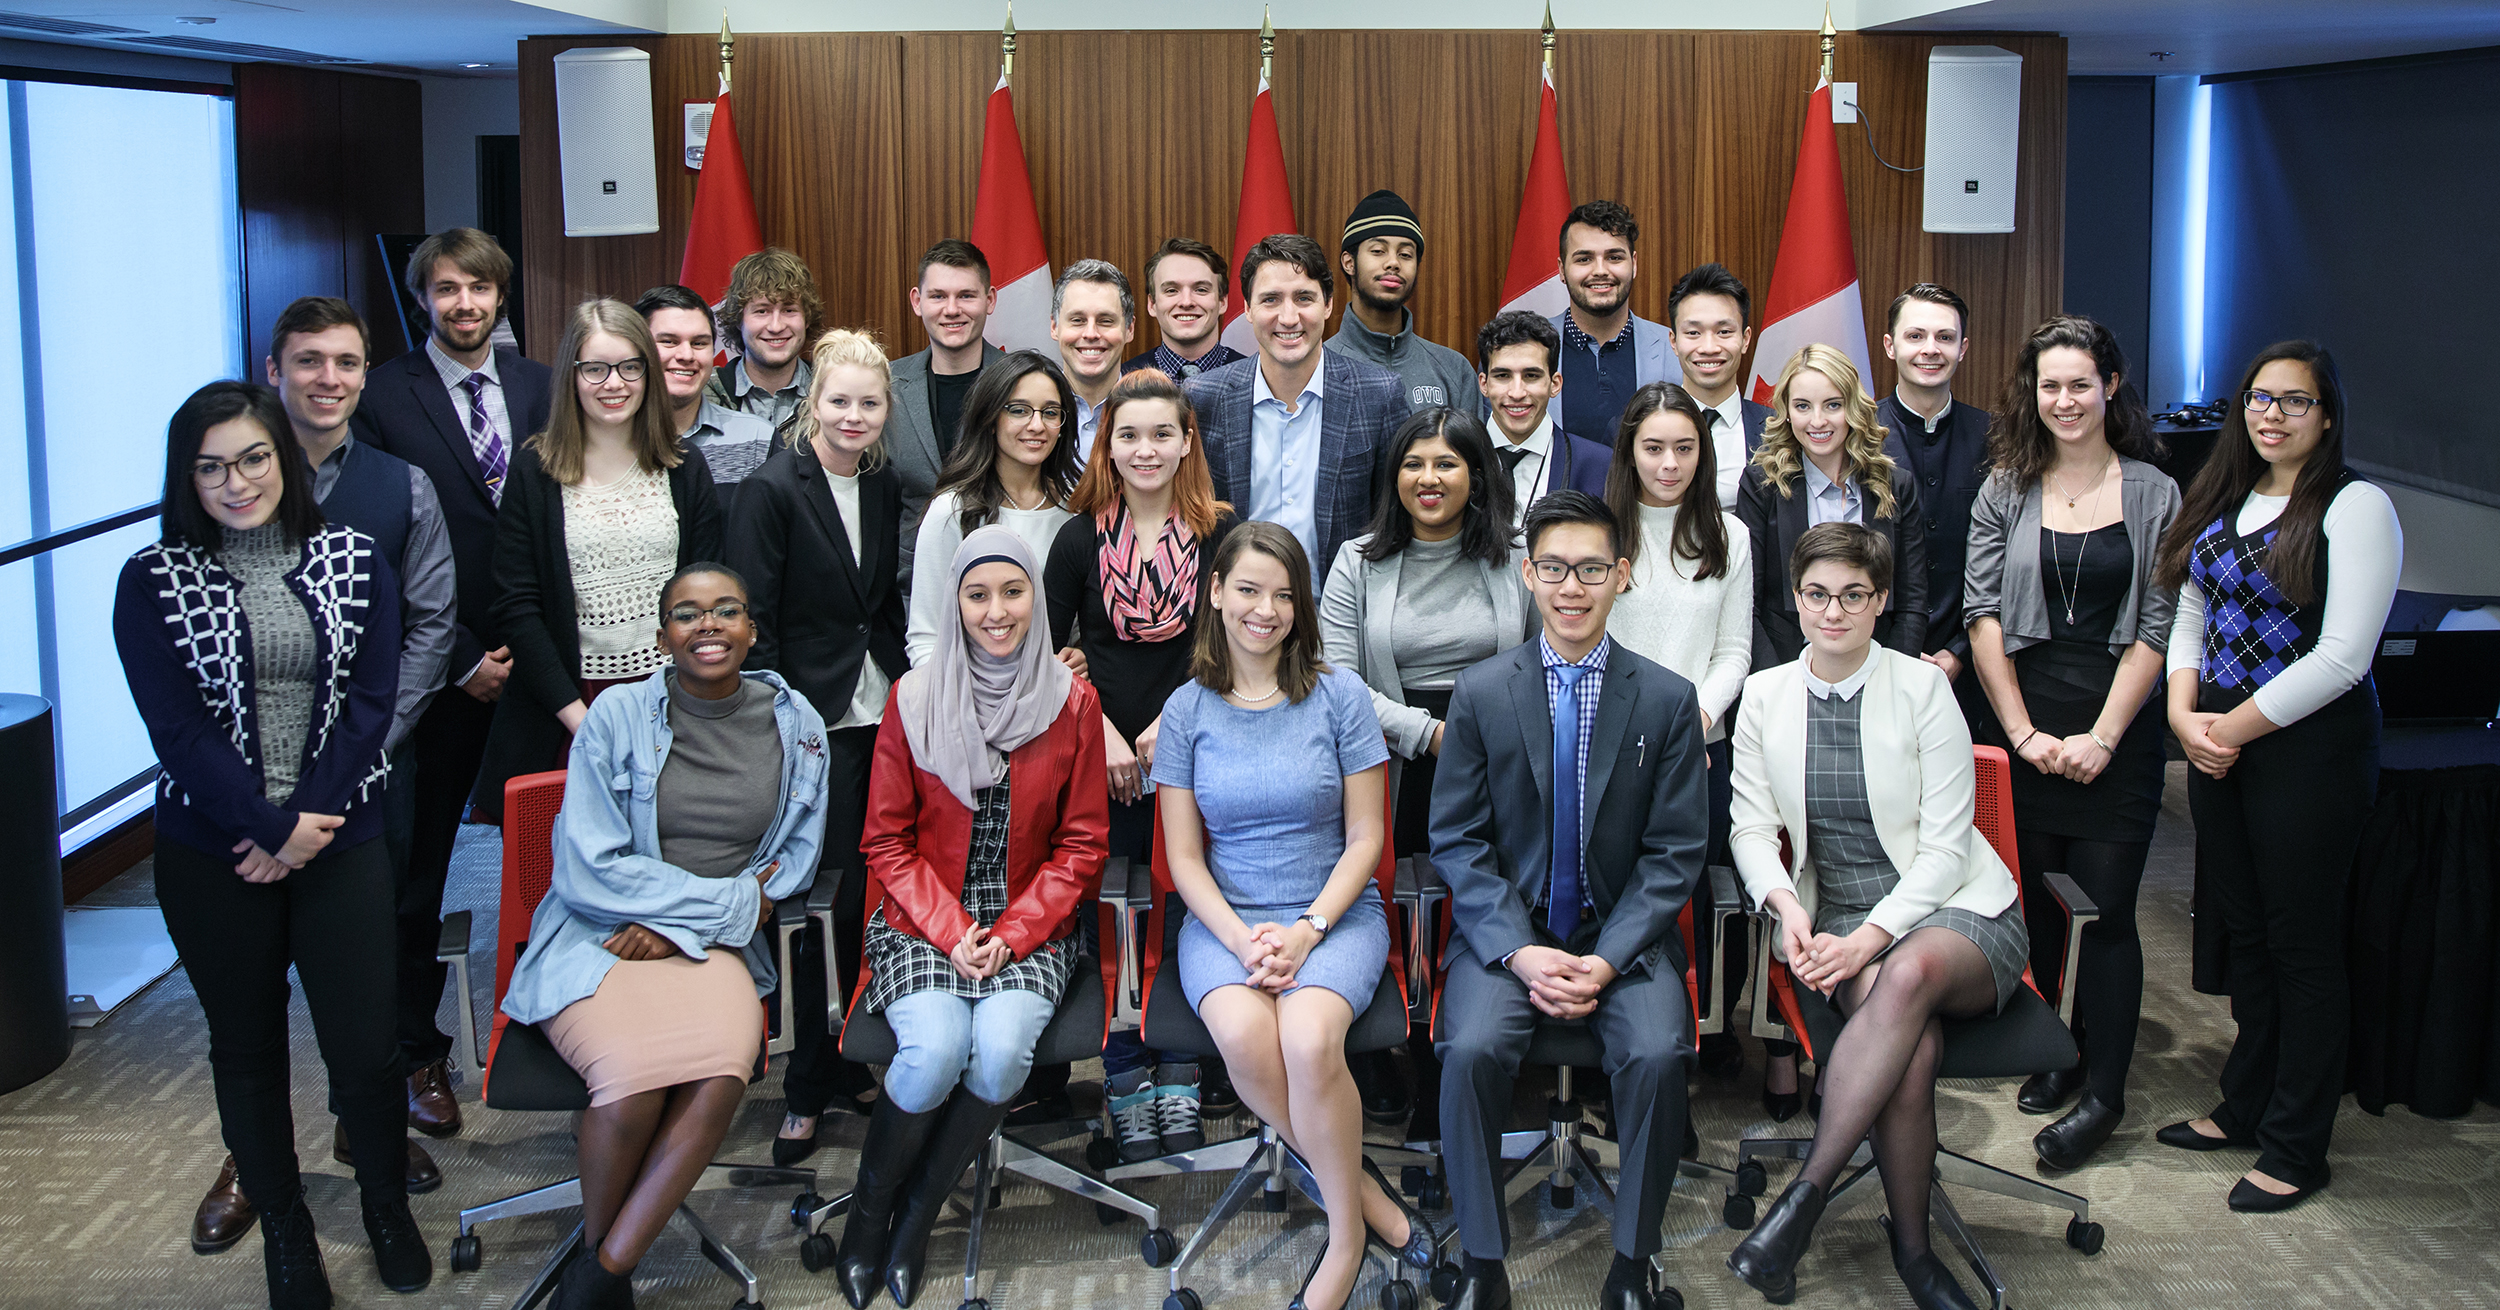 Youth Council Image